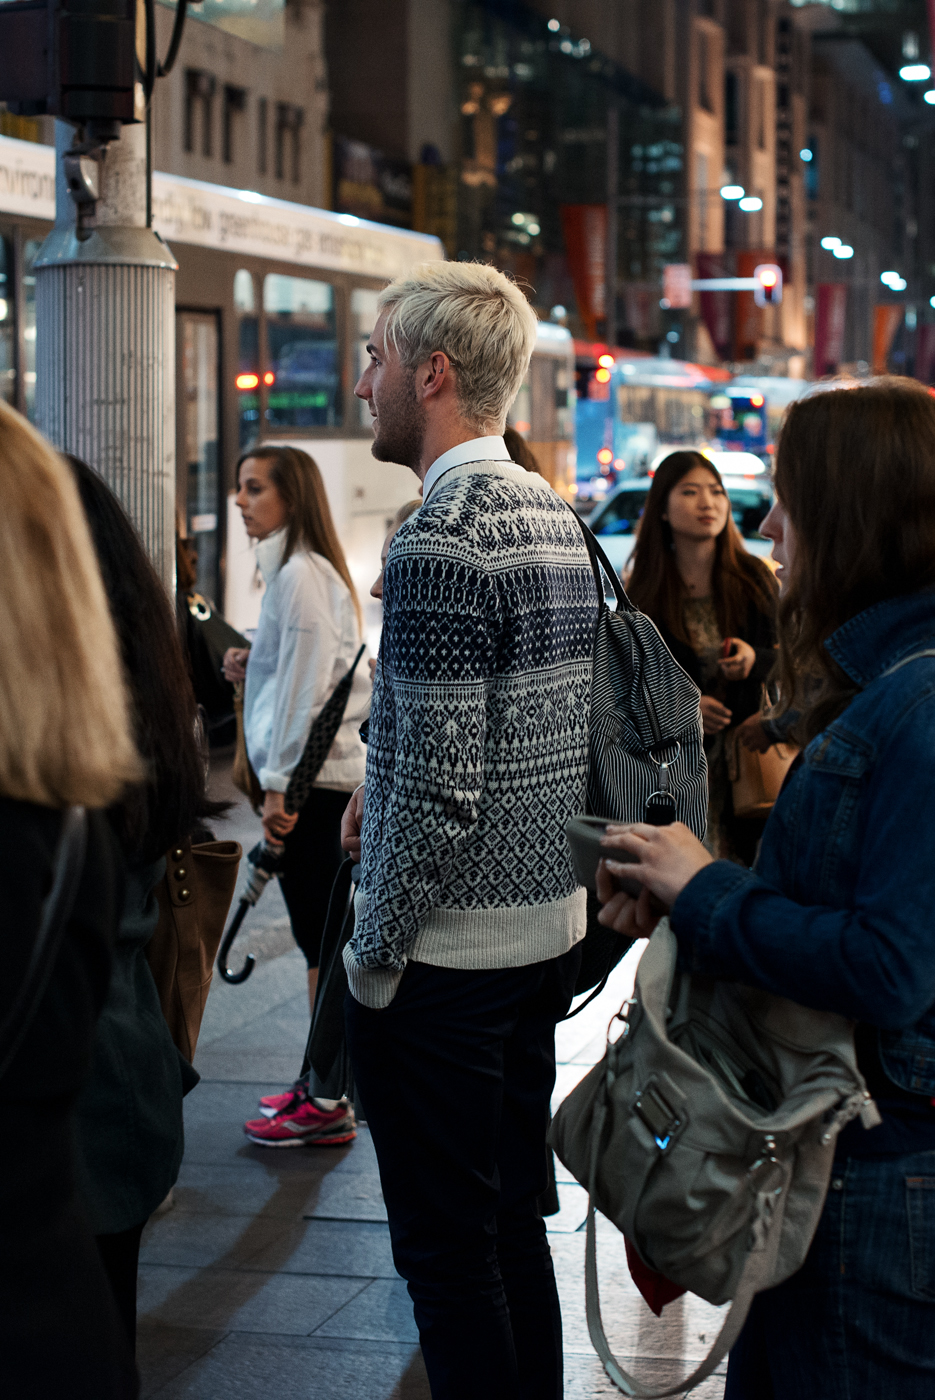 Cooler nights ahead.   Similar look:   Jack Spade Fair Isle Sweater  .